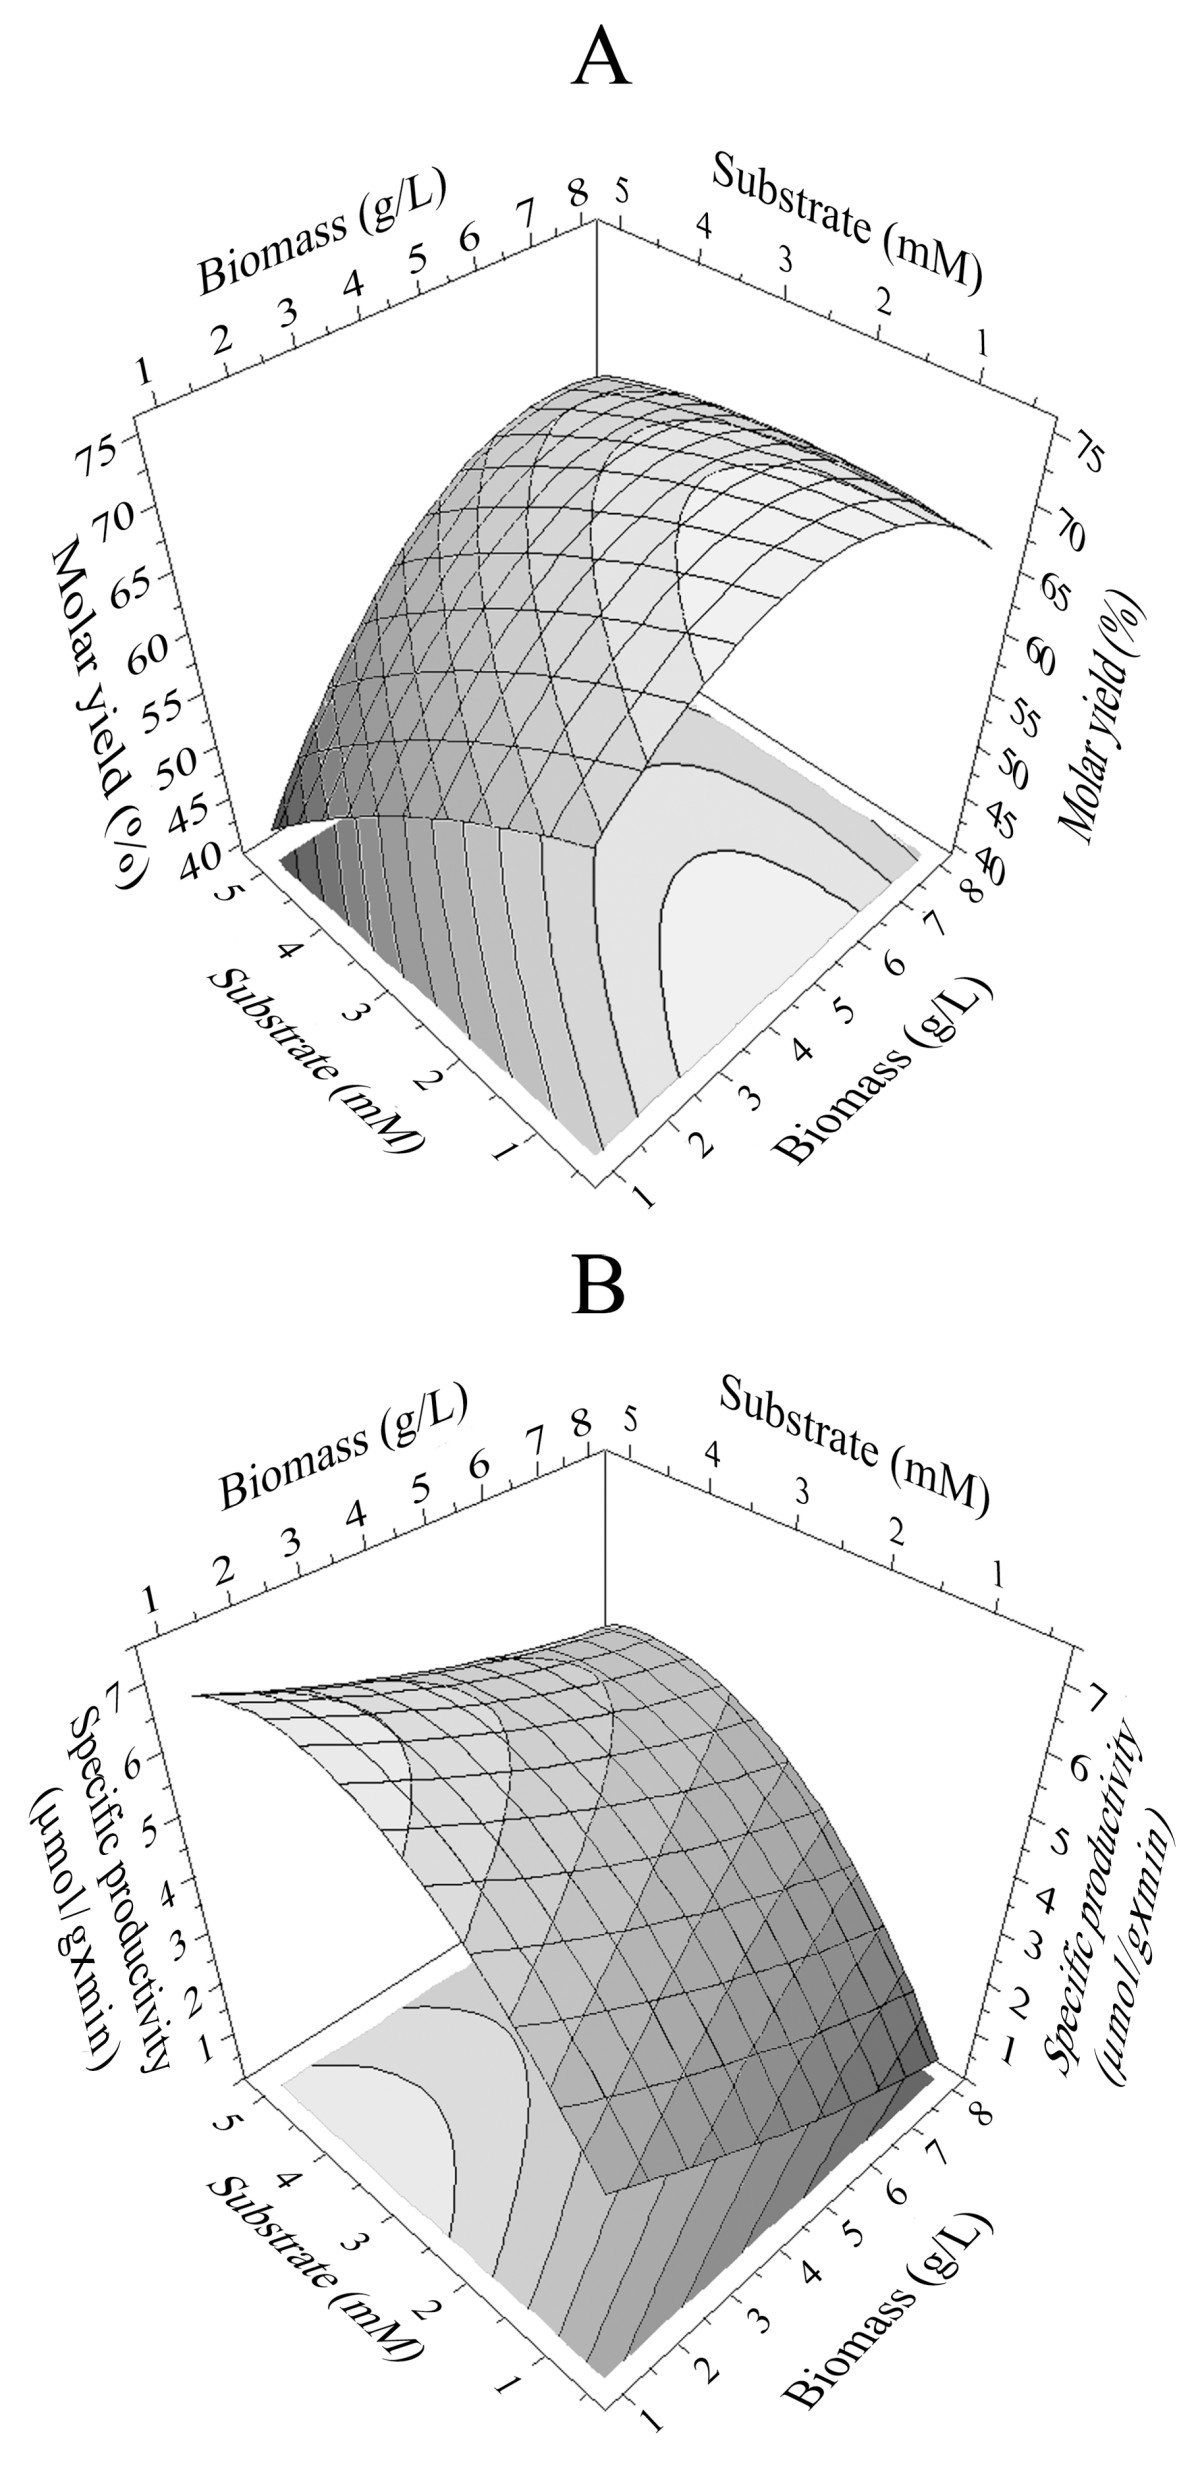 http://static-content.springer.com/image/art%3A10.1186%2F1475-2859-6-13/MediaObjects/12934_2006_Article_256_Fig5_HTML.jpg